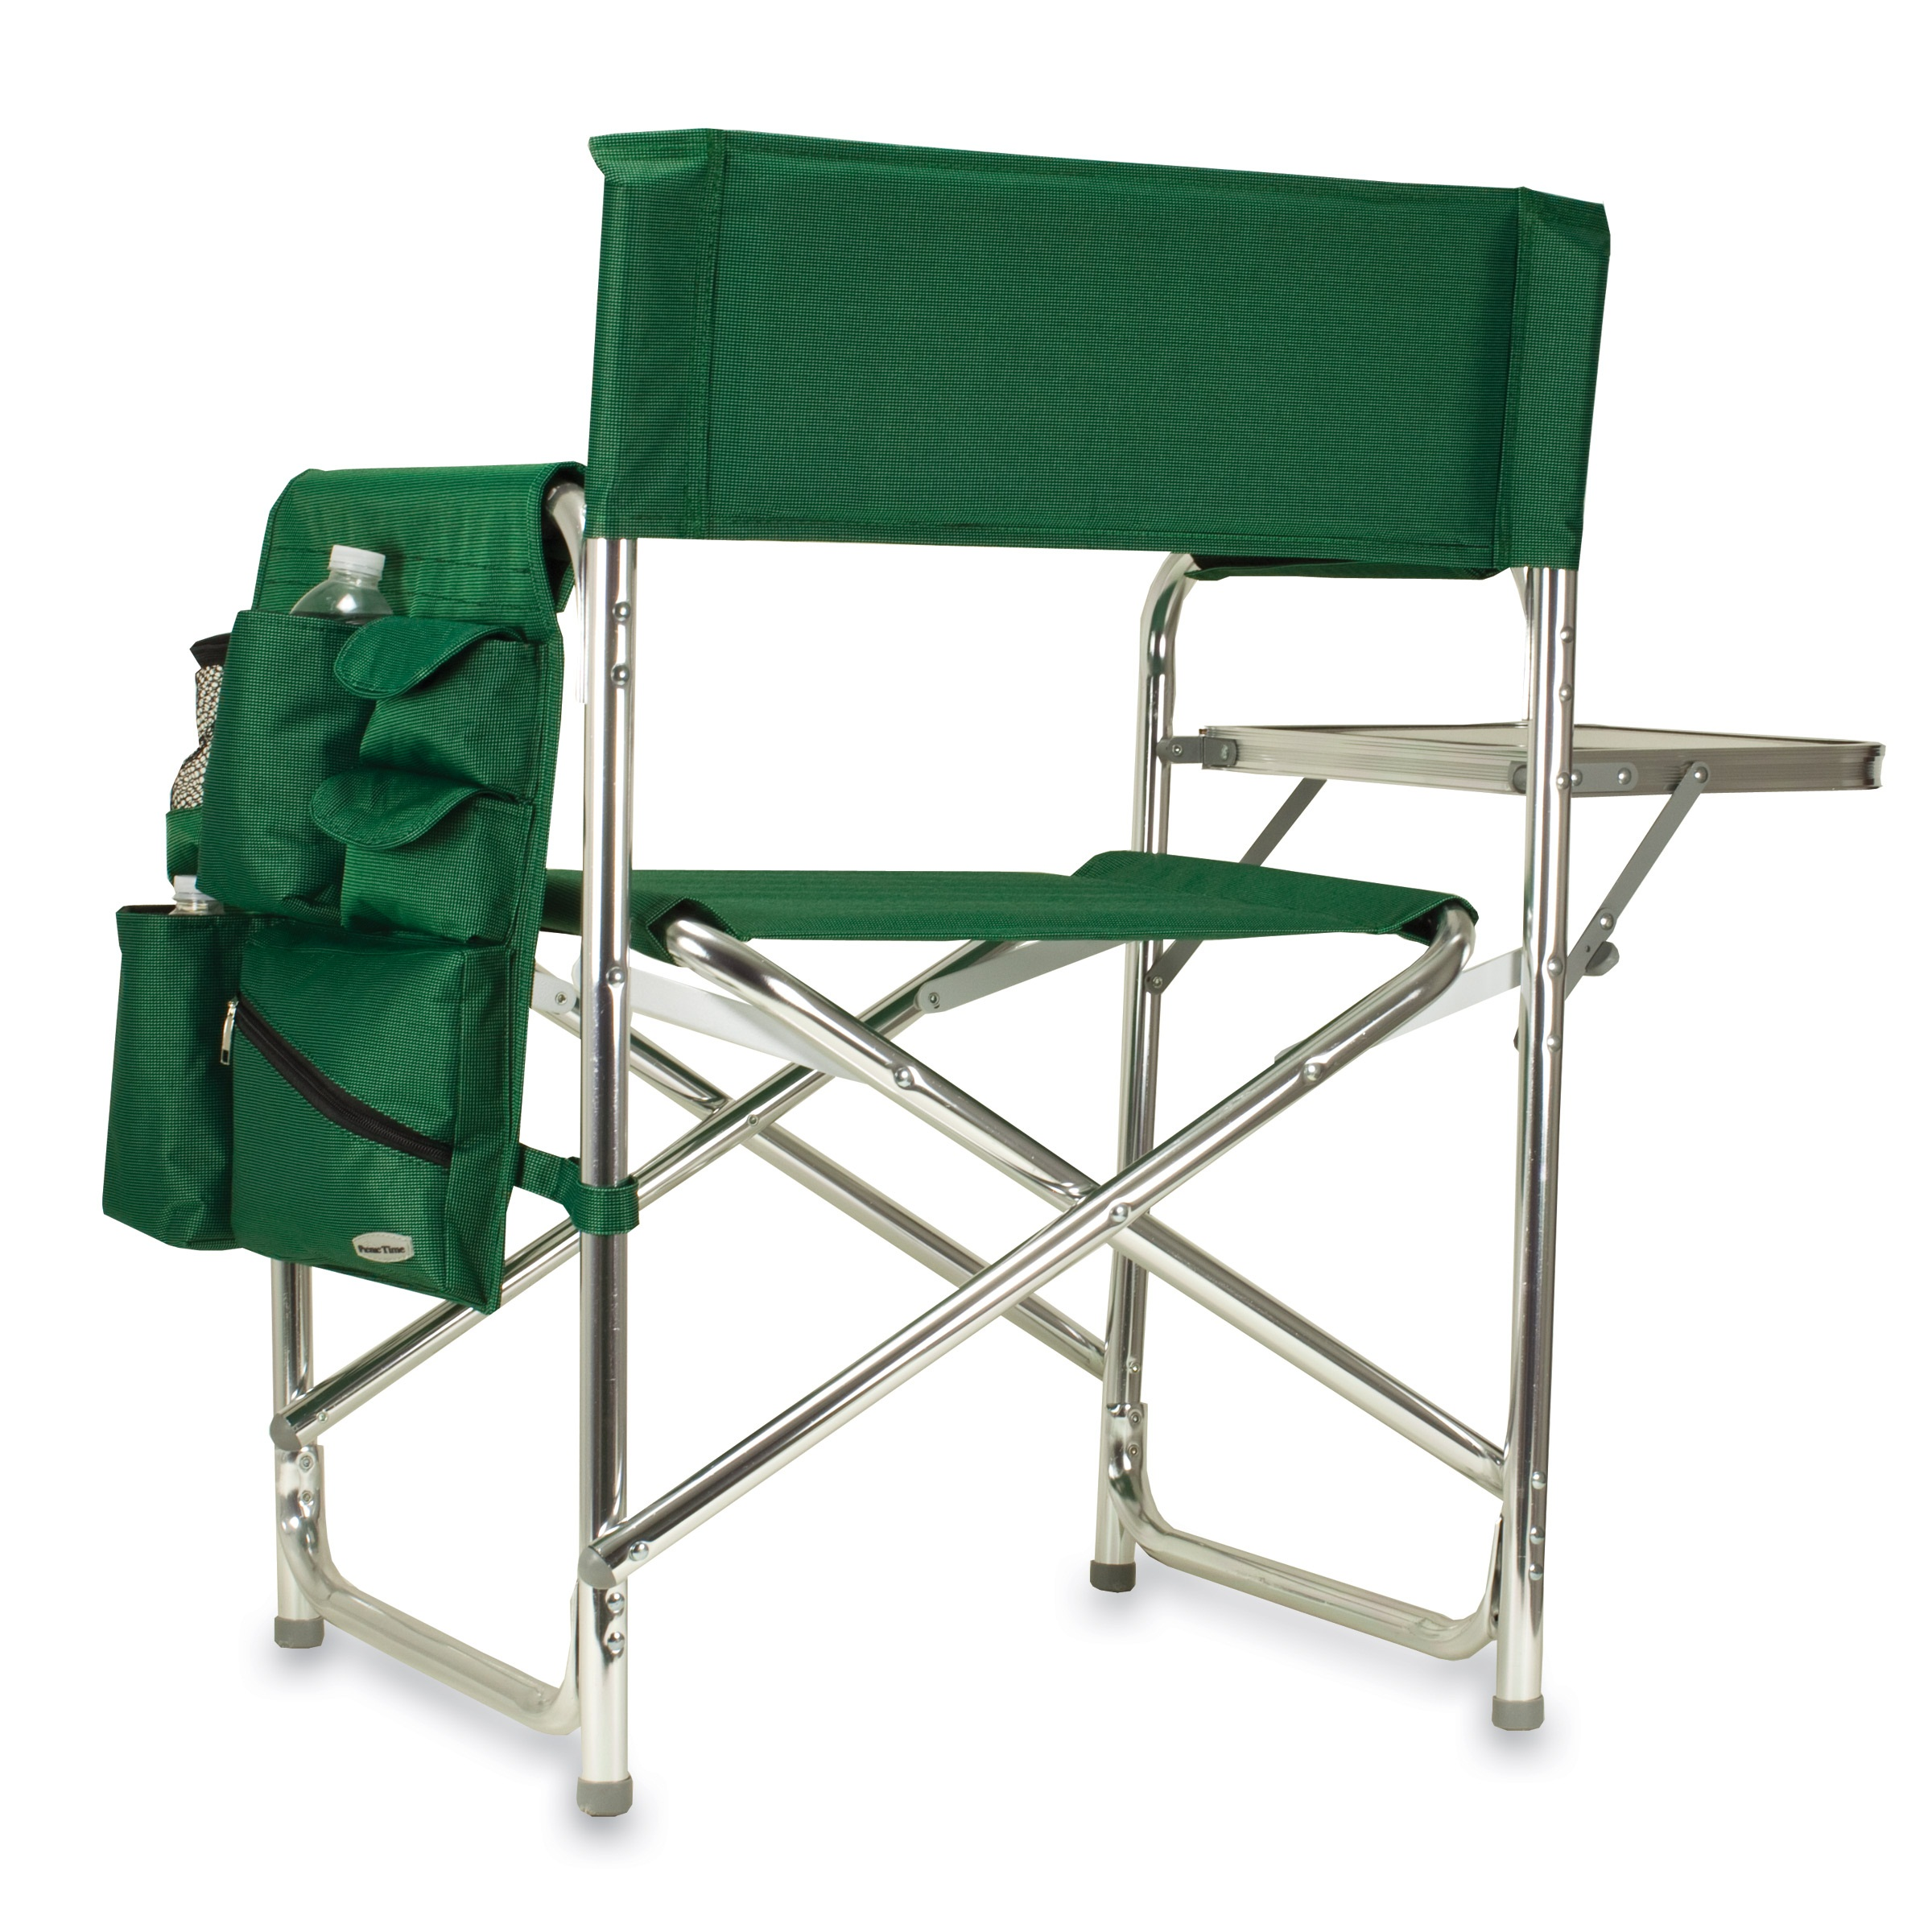 Aluminum folding chair - Picnic Time Green Portable Folding Sports Camping Chair